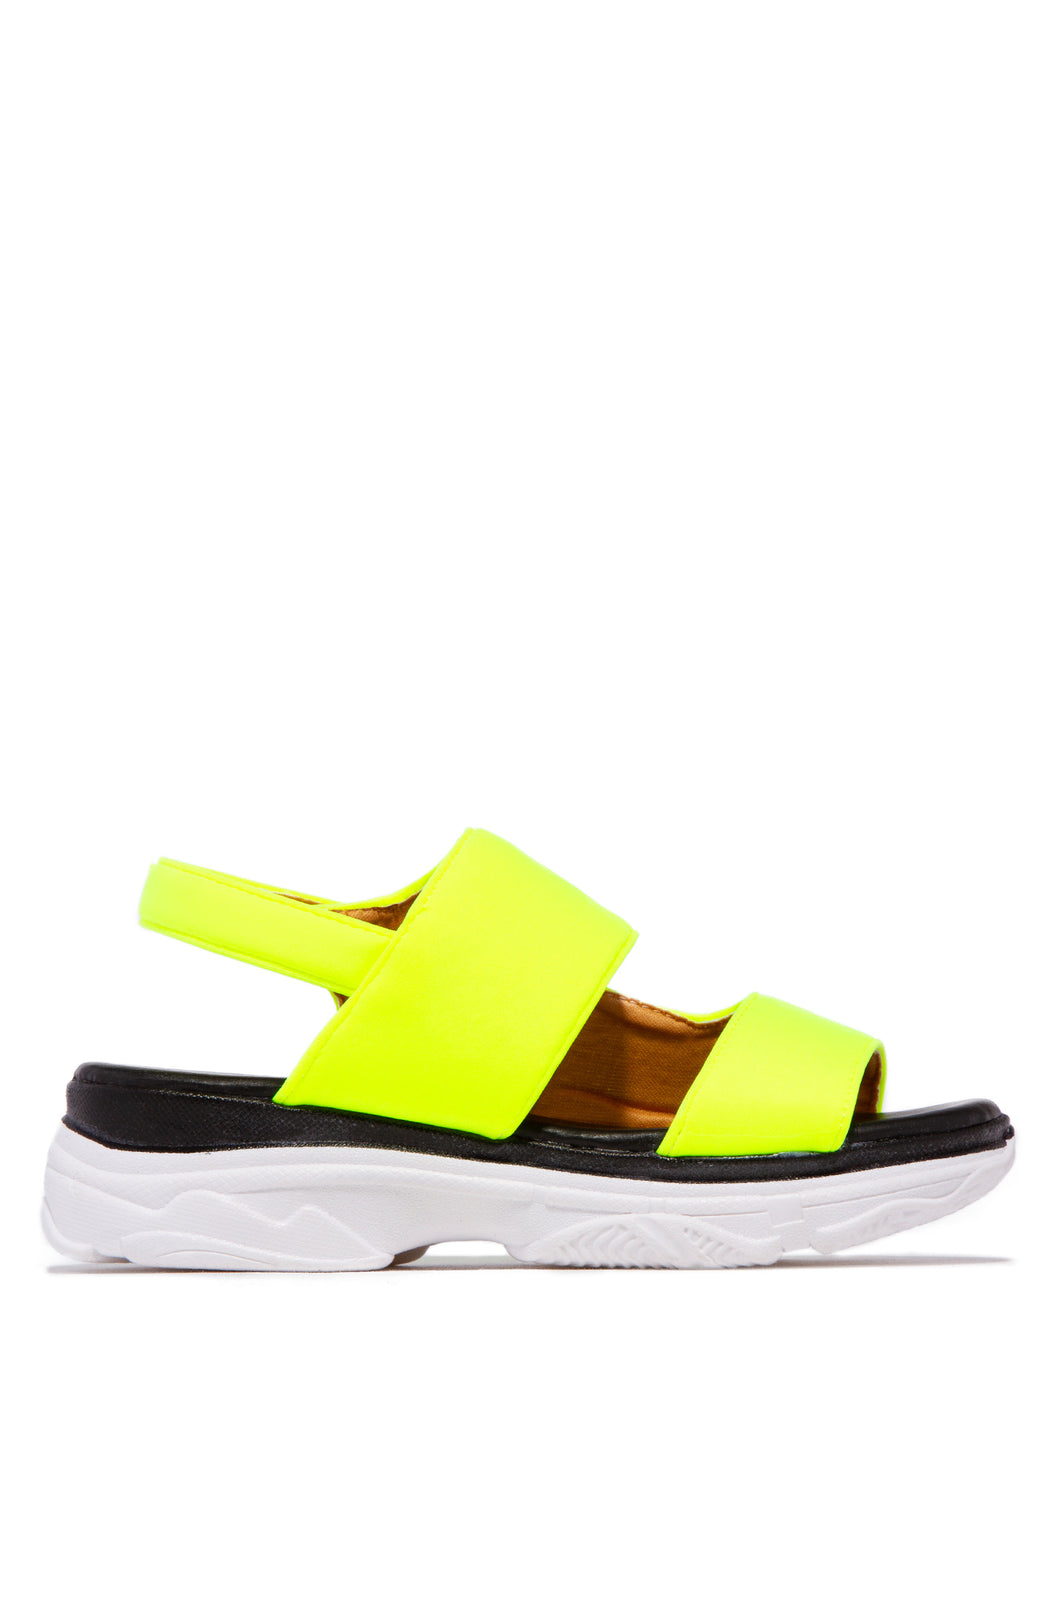 Fresh Step - Neon Yellow